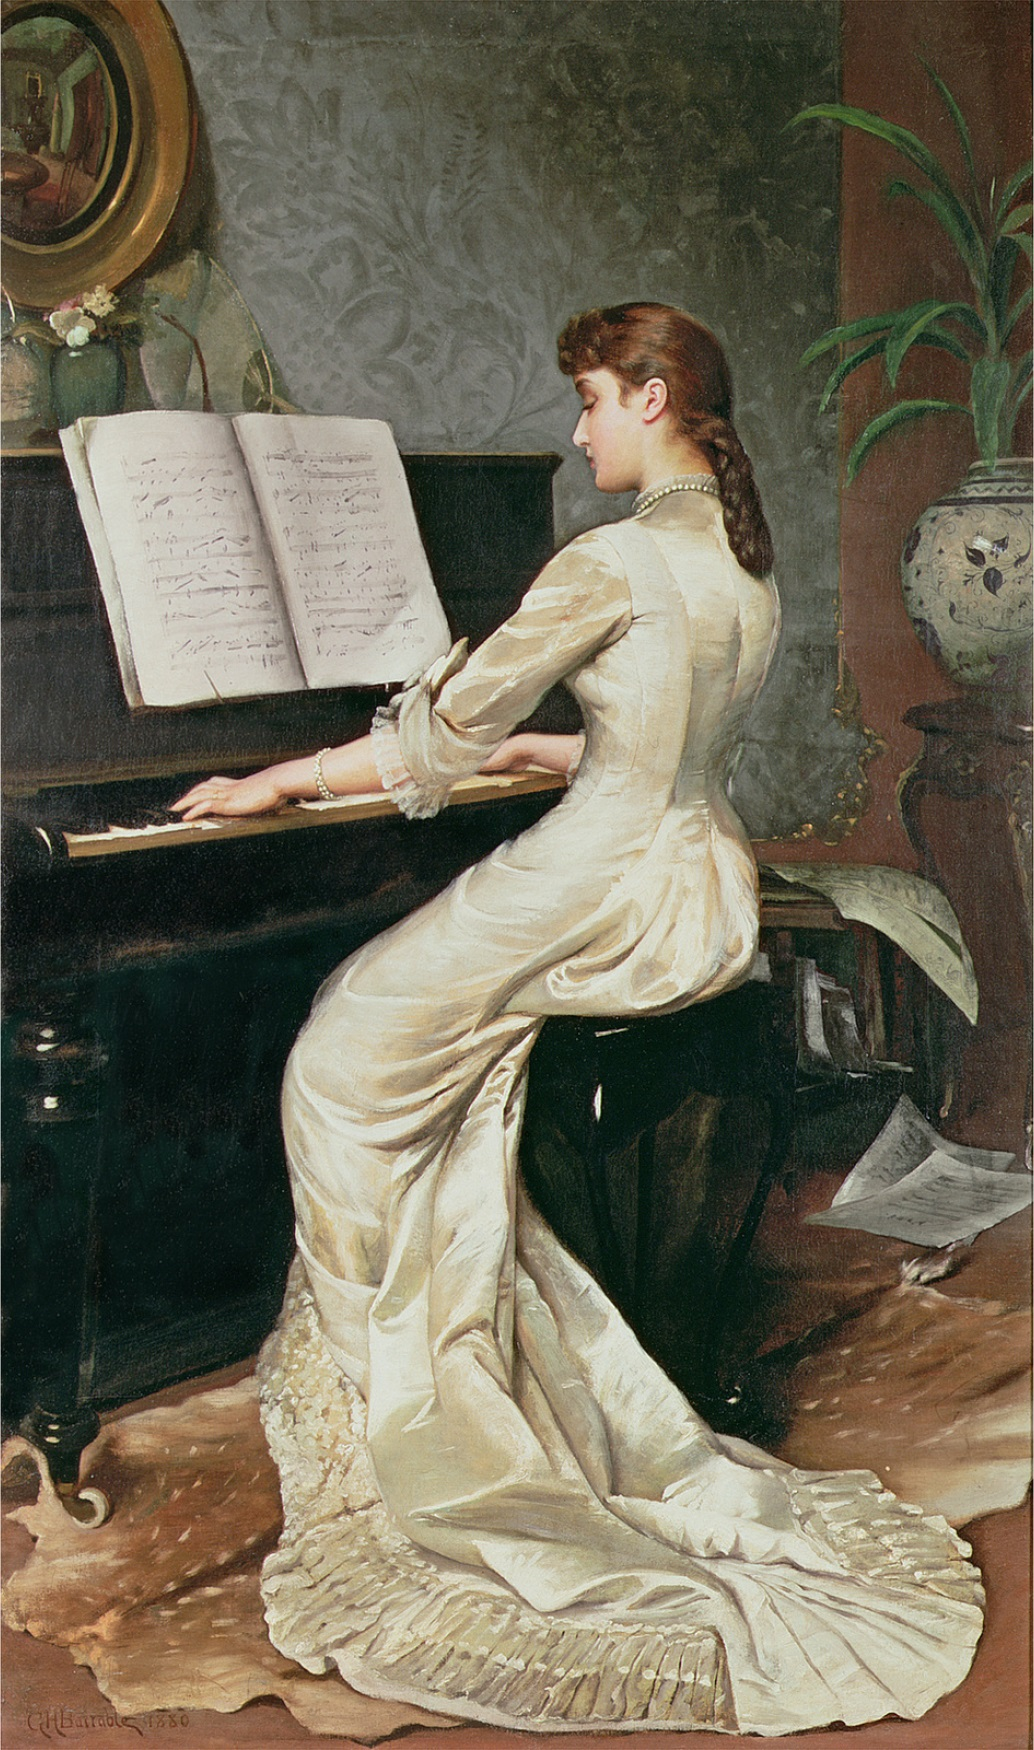 File:Barrable, George Hamilton - A Song Without Words - 1888.JPG